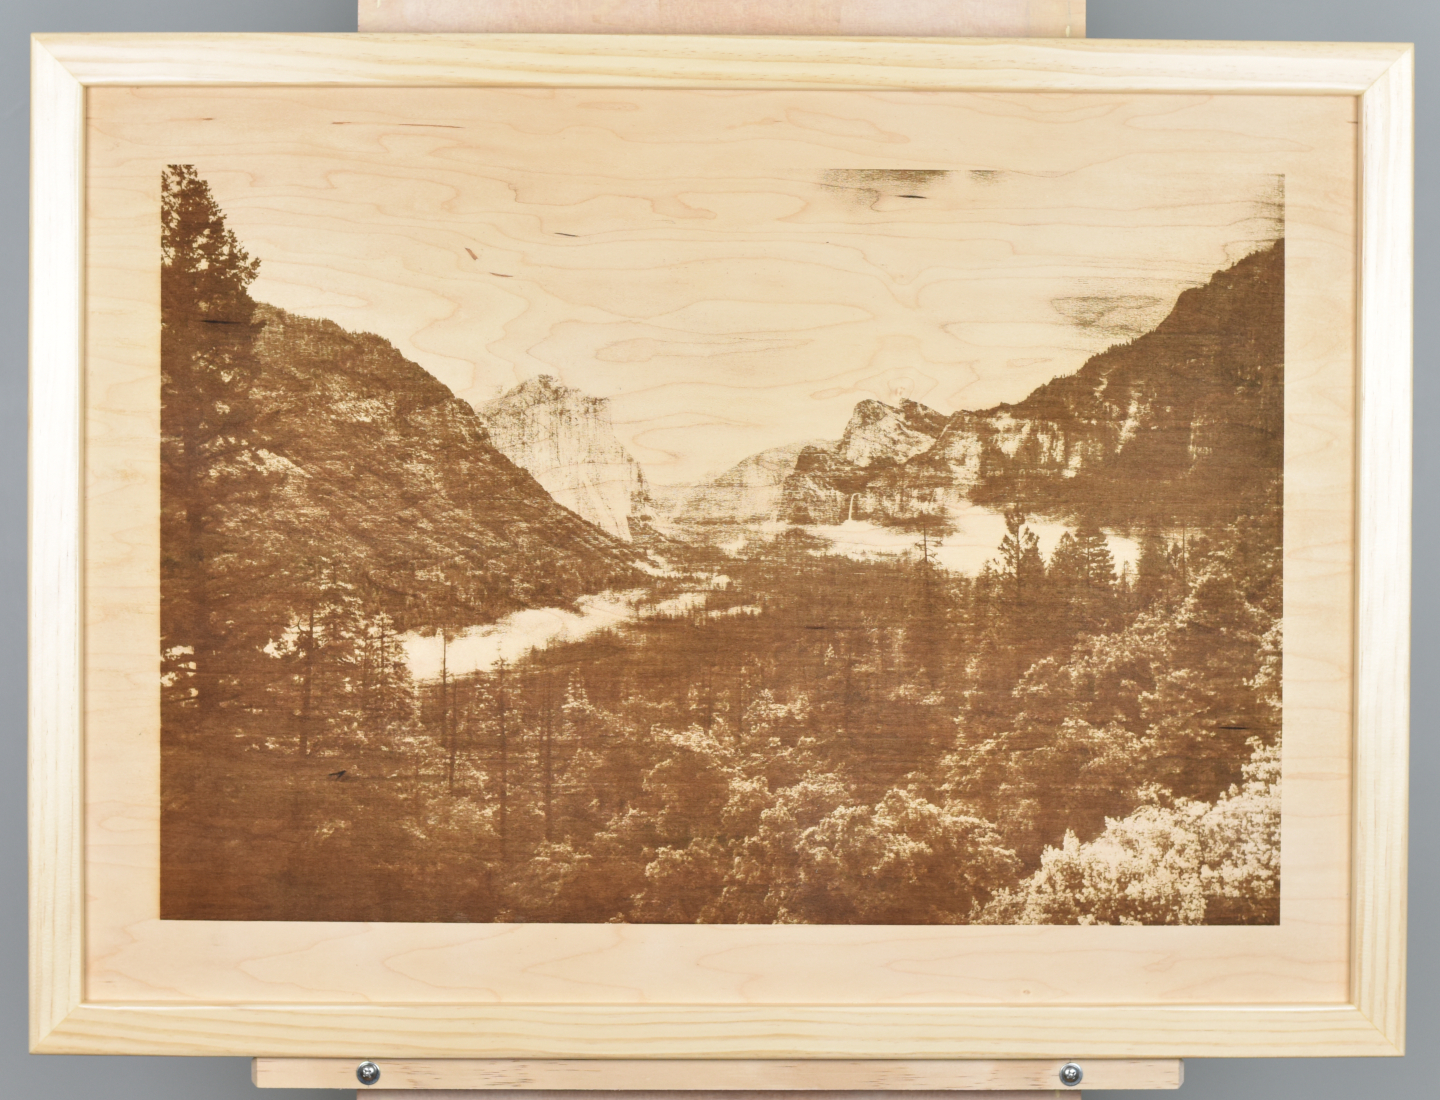 A wood burning (digital pyrograph) of Yosemite Valley taken from the Tunnel View.